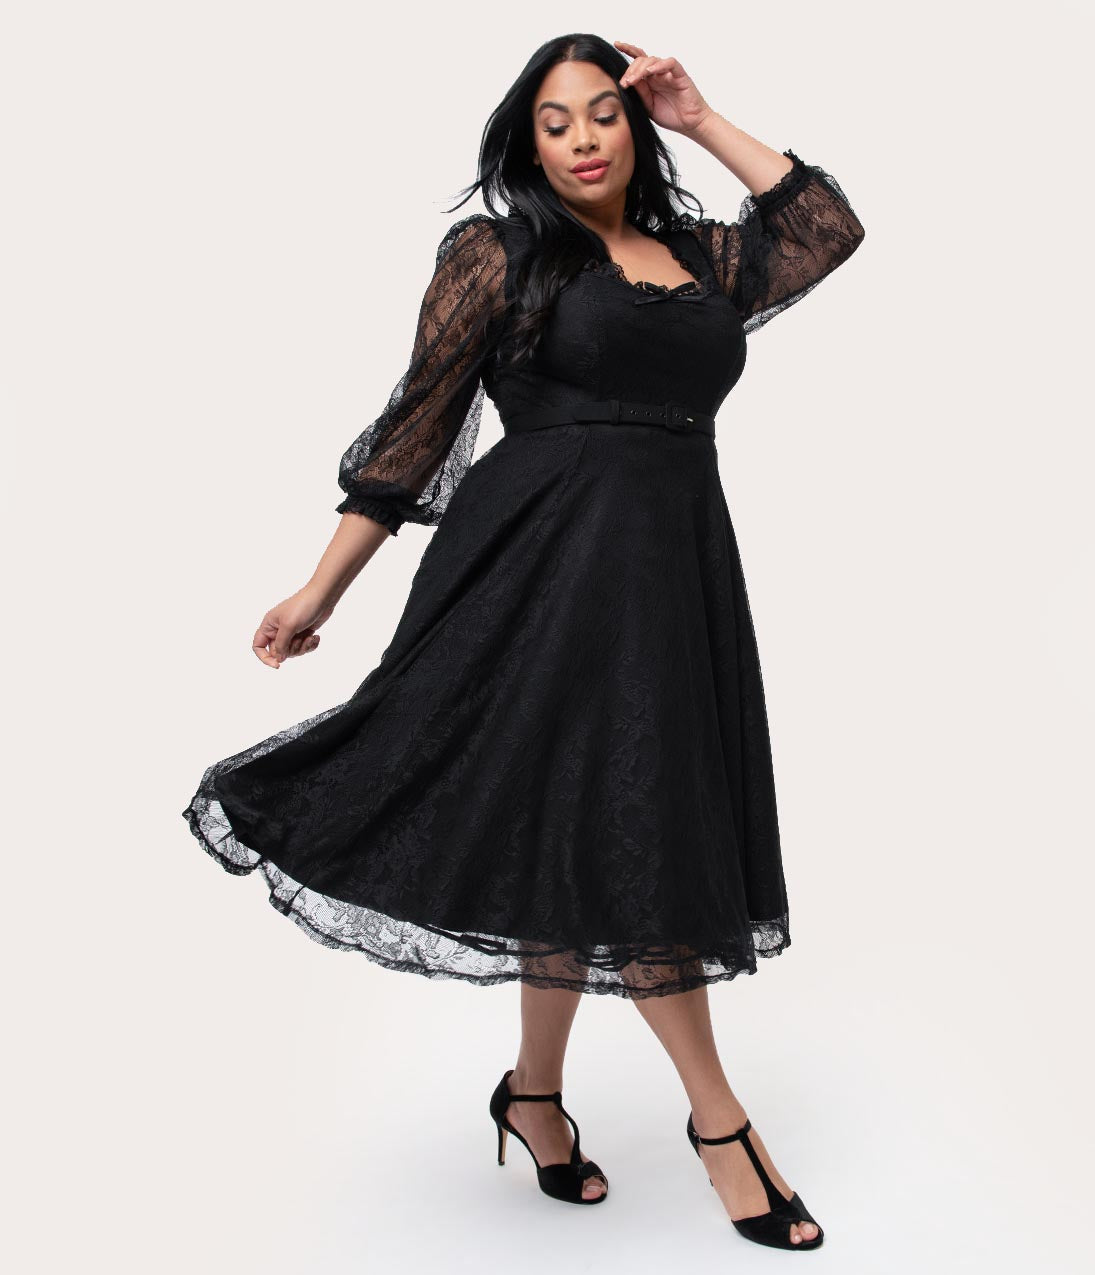 1940s Plus Size Clothing: Dresses History Vixen By Micheline Pitt Plus Size Black Lace Decadence Swing Dress $140.00 AT vintagedancer.com